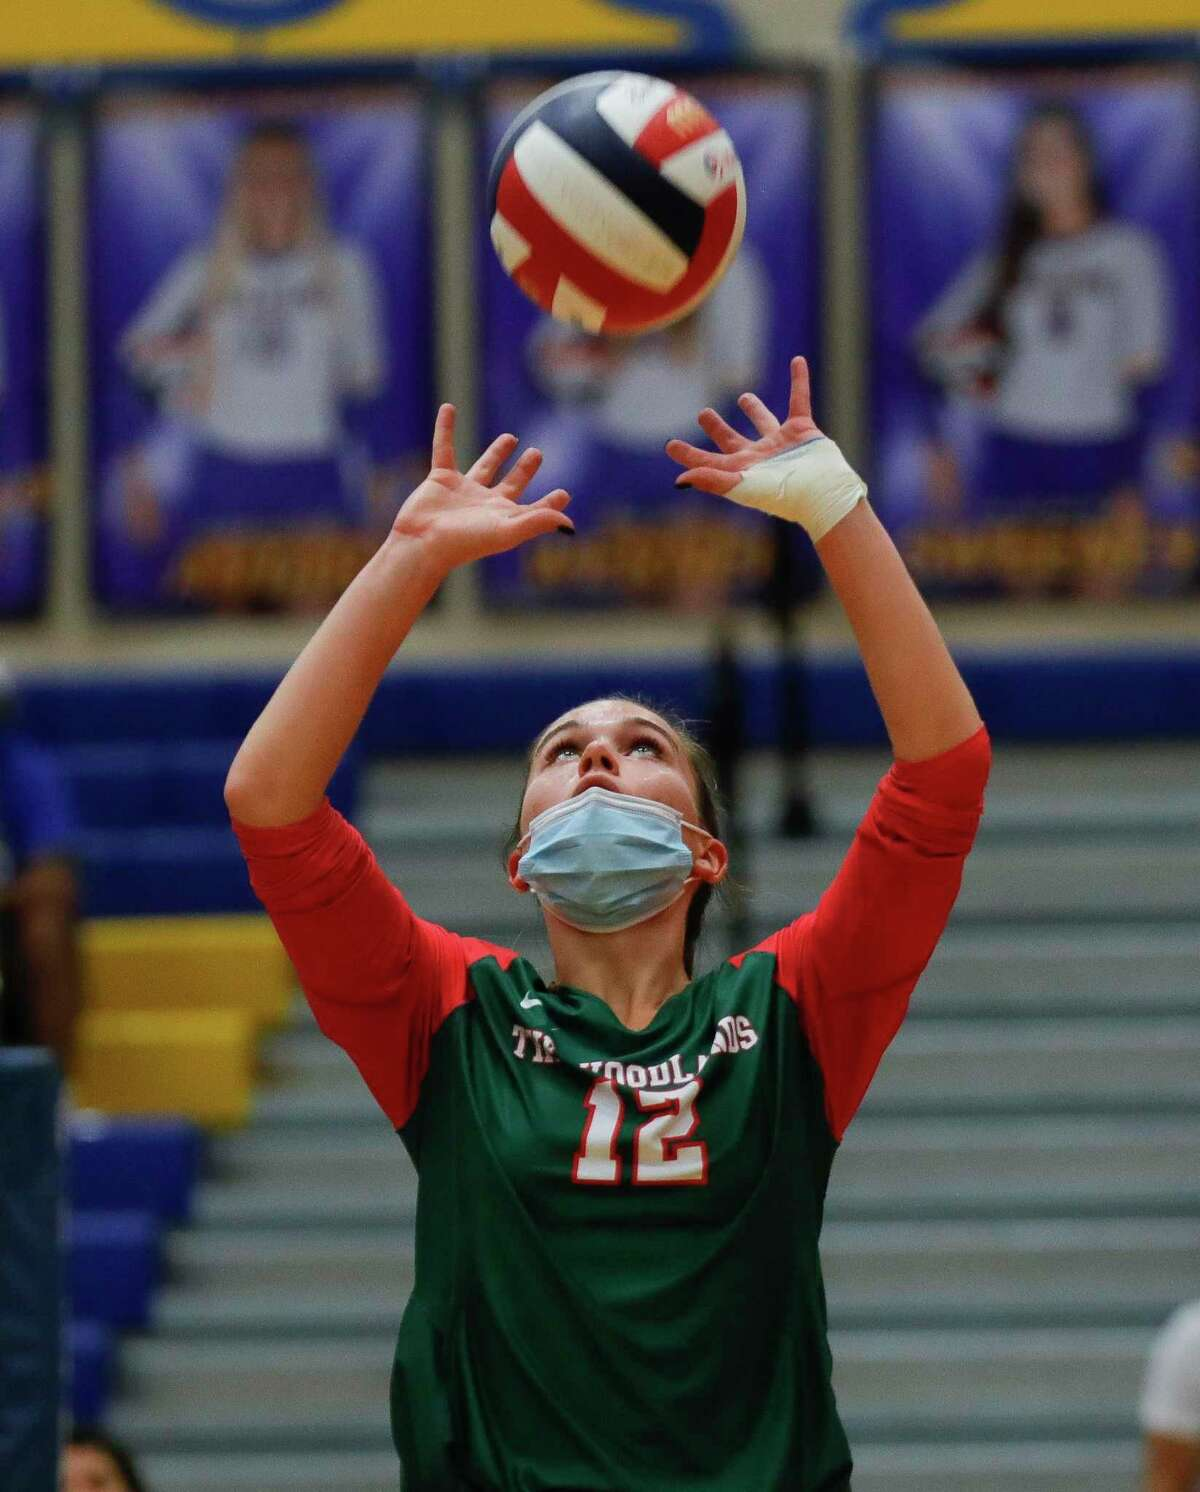 The Woodlands setter Clara Brower (13) sets the ball during the first set of a non-district high school volleyball match at Klein High School, Saturday, Oct. 10, 2020, in Spring.